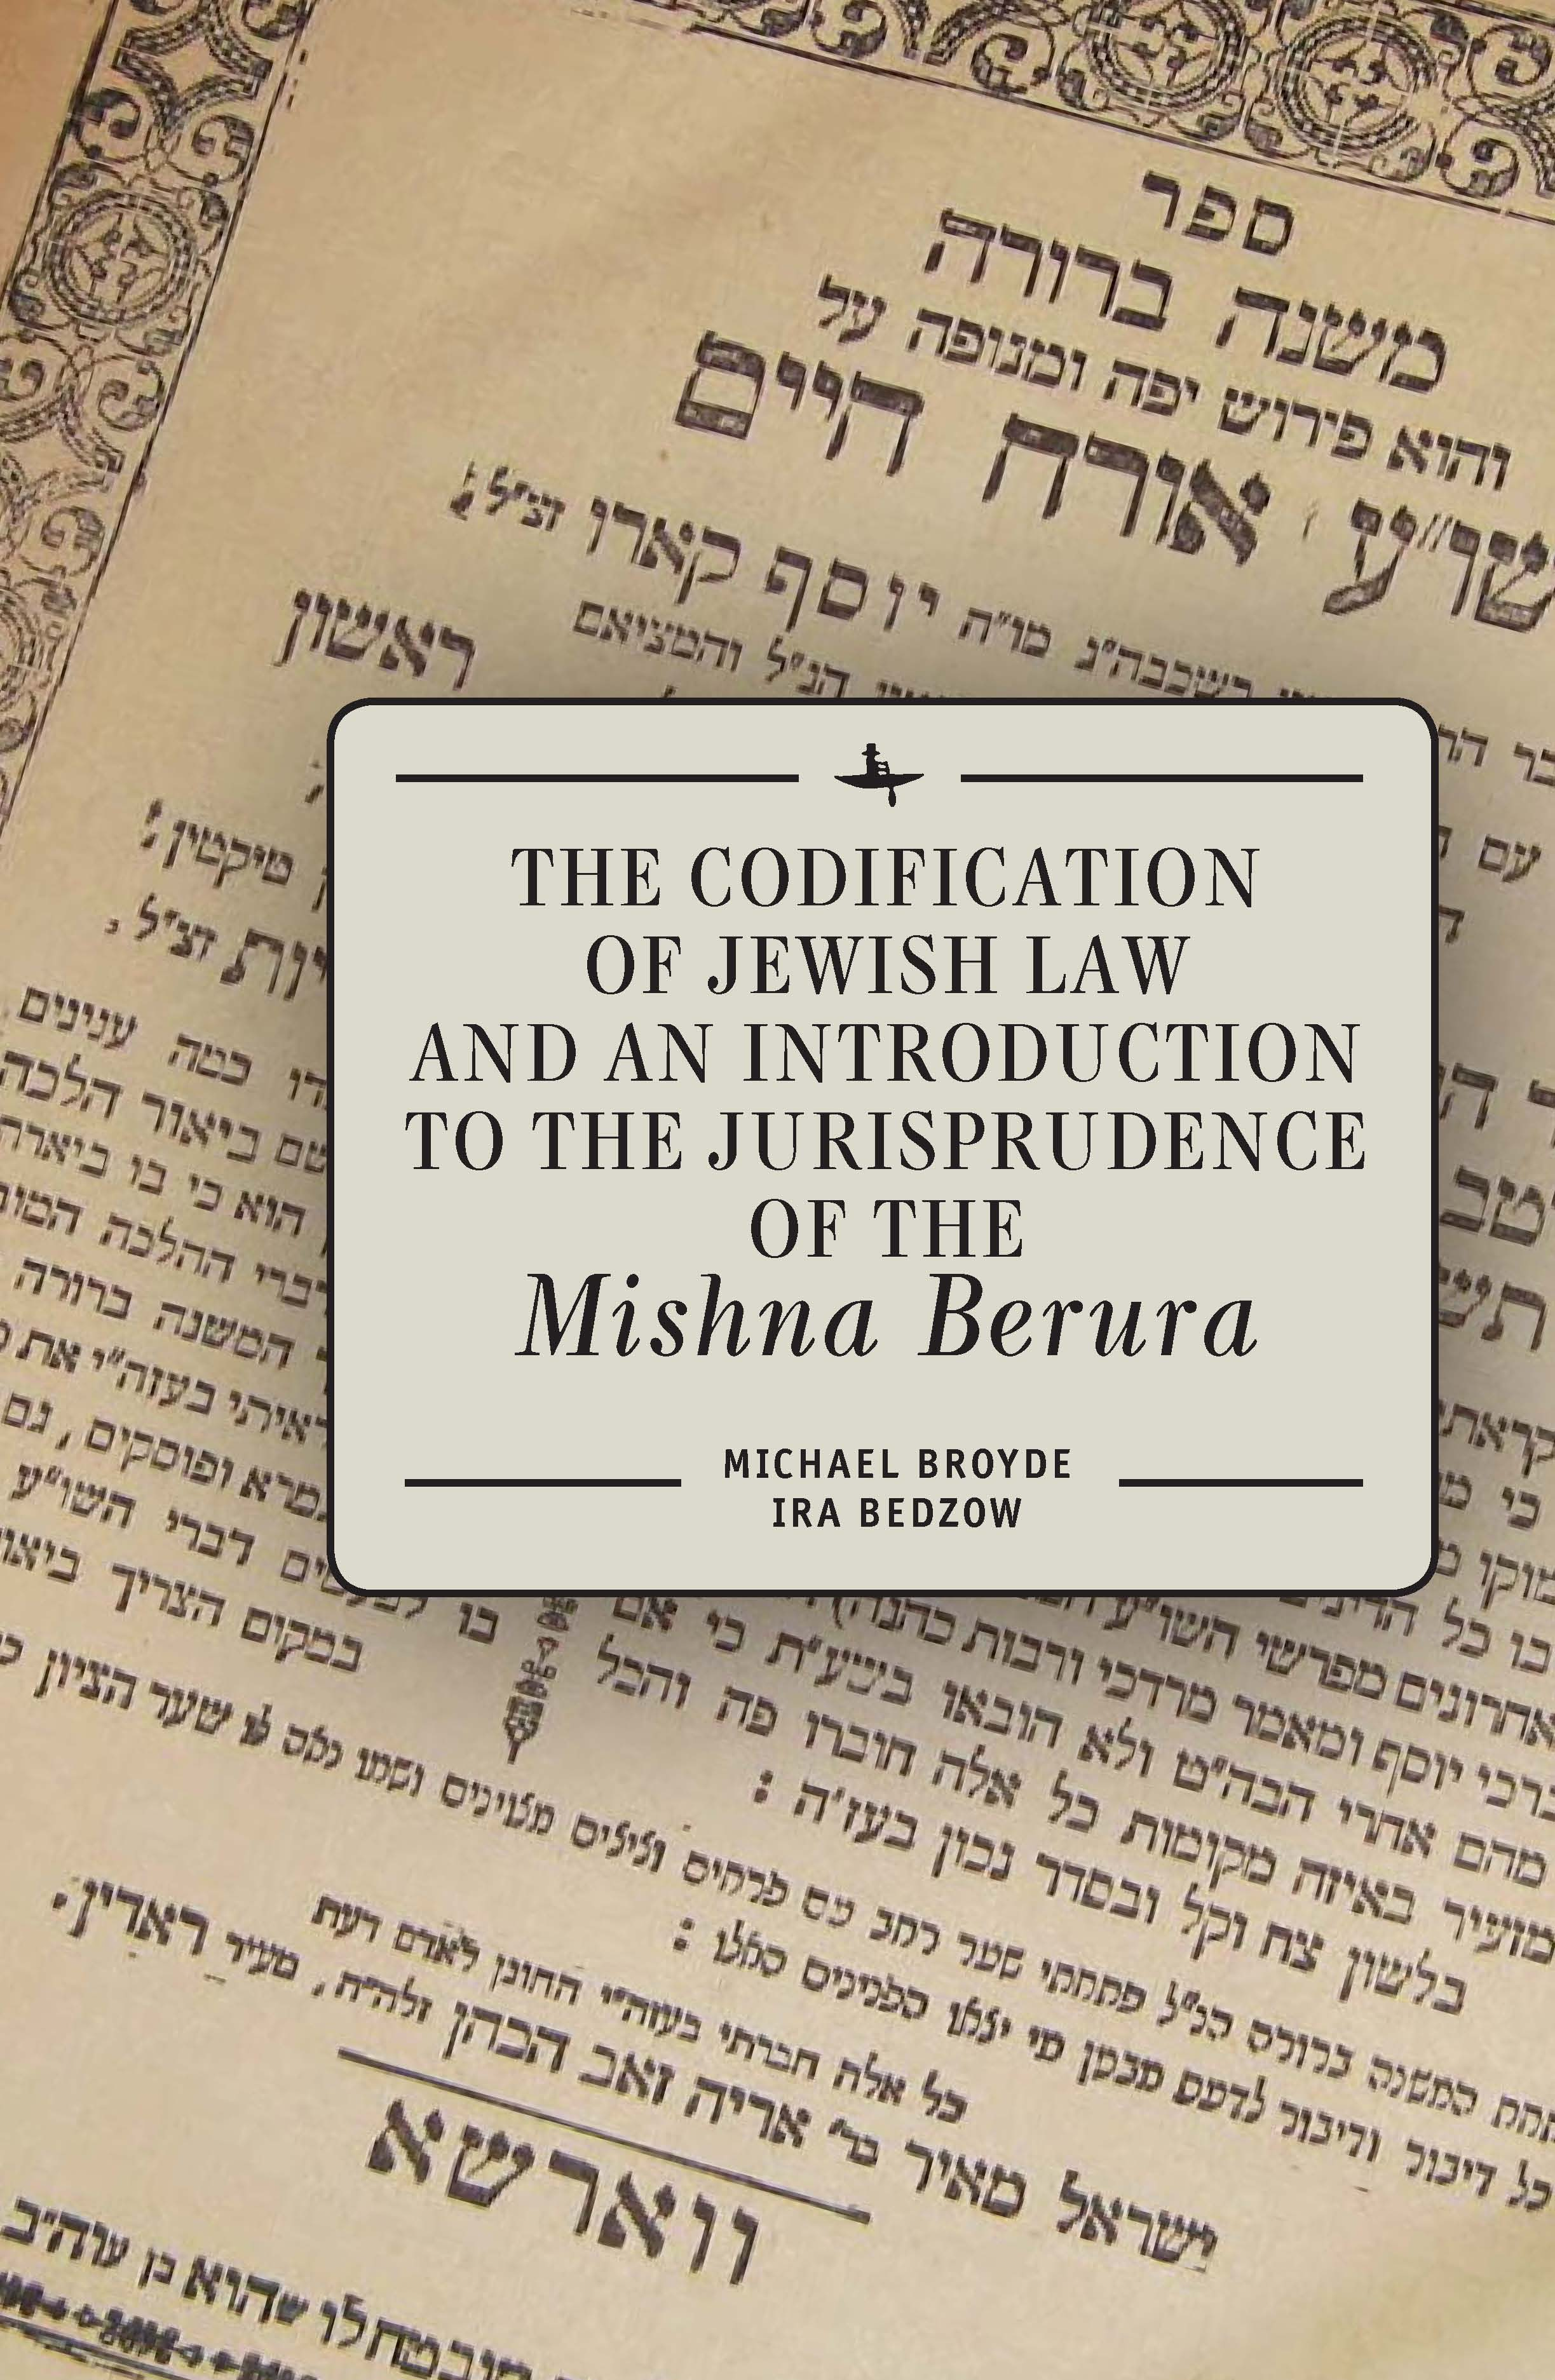 The Codification of Jewish Law and an Introduction to the Jurisprudence of the  Mishna Berura   Michael J. Broyde & Ira Bedzow   Read on JSTOR  |  Purchase book